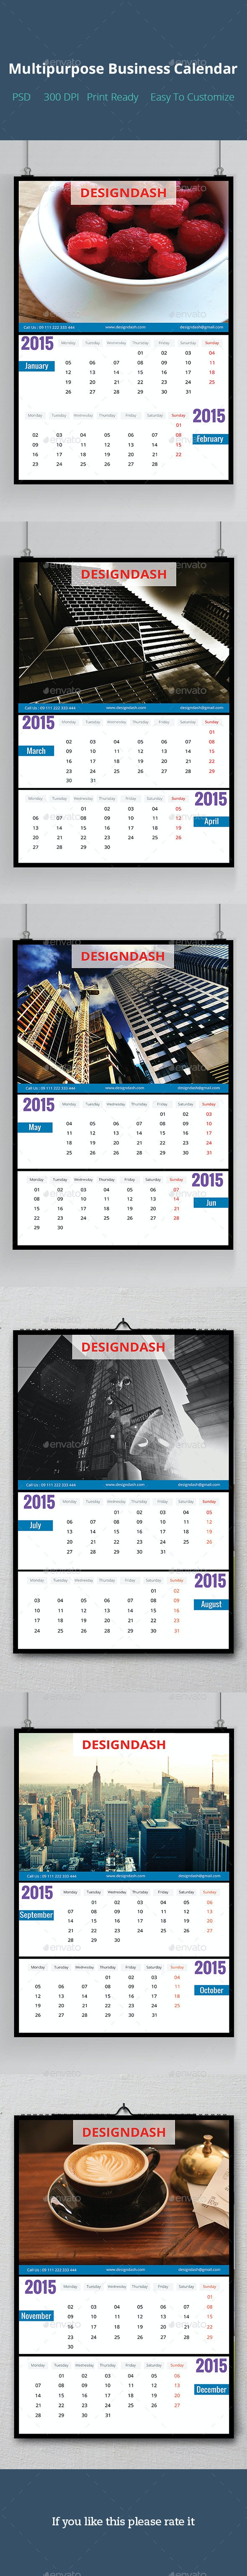 Multipurpose Business Calendar Design - Stationery Print Templates